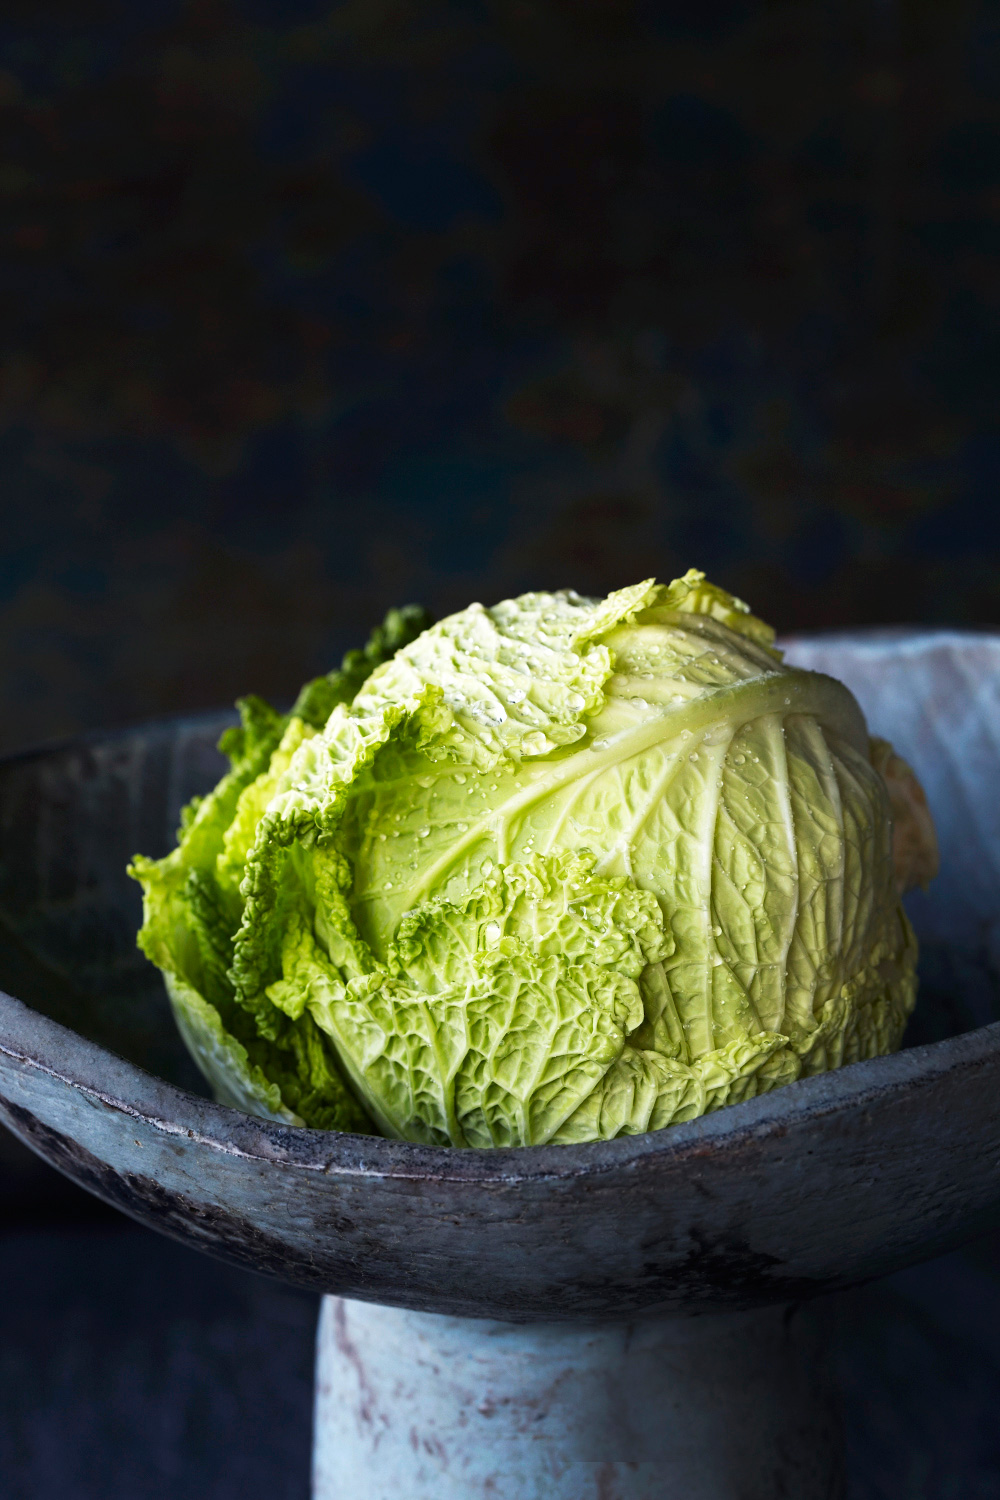 026_ingredient_cabbage_12099